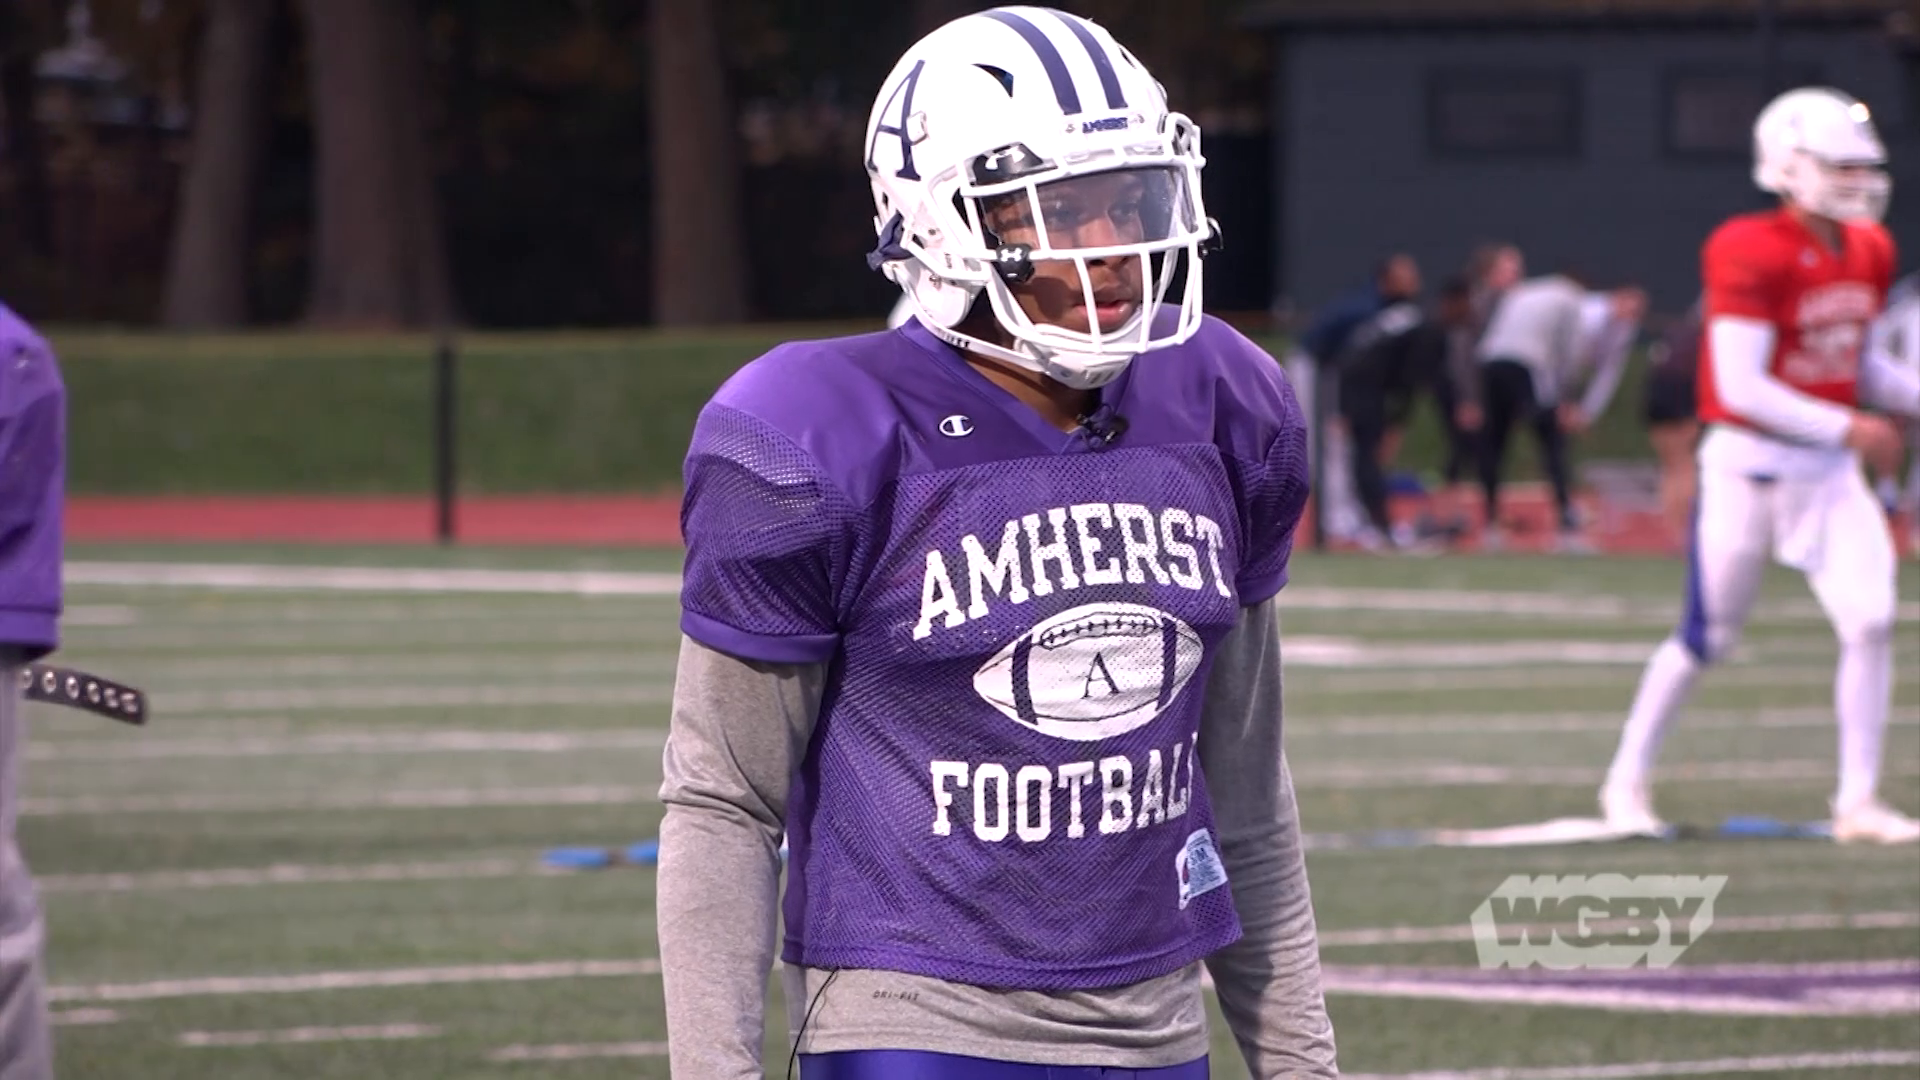 Avery Saffold: Openly Gay Amherst College Football Captain